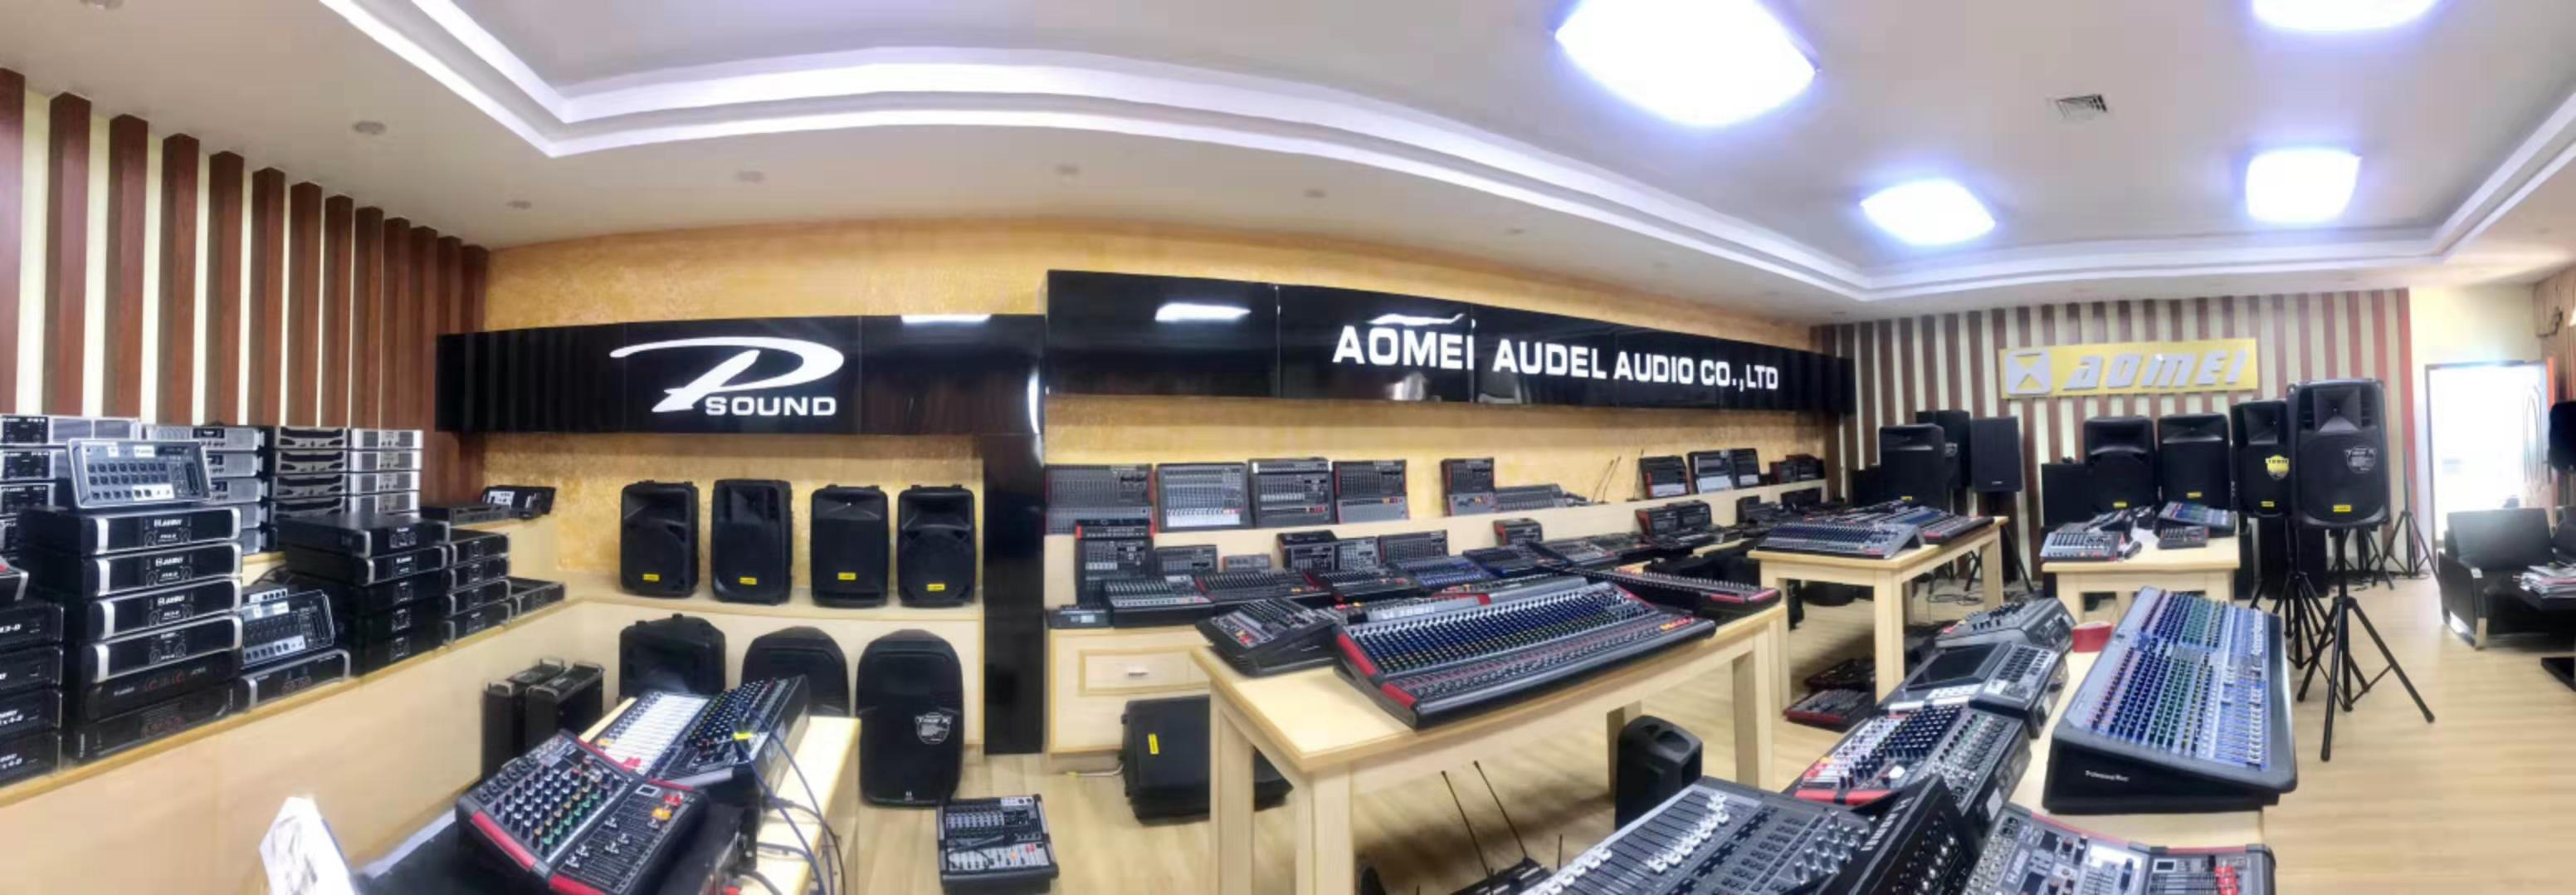 aomei audio showroom